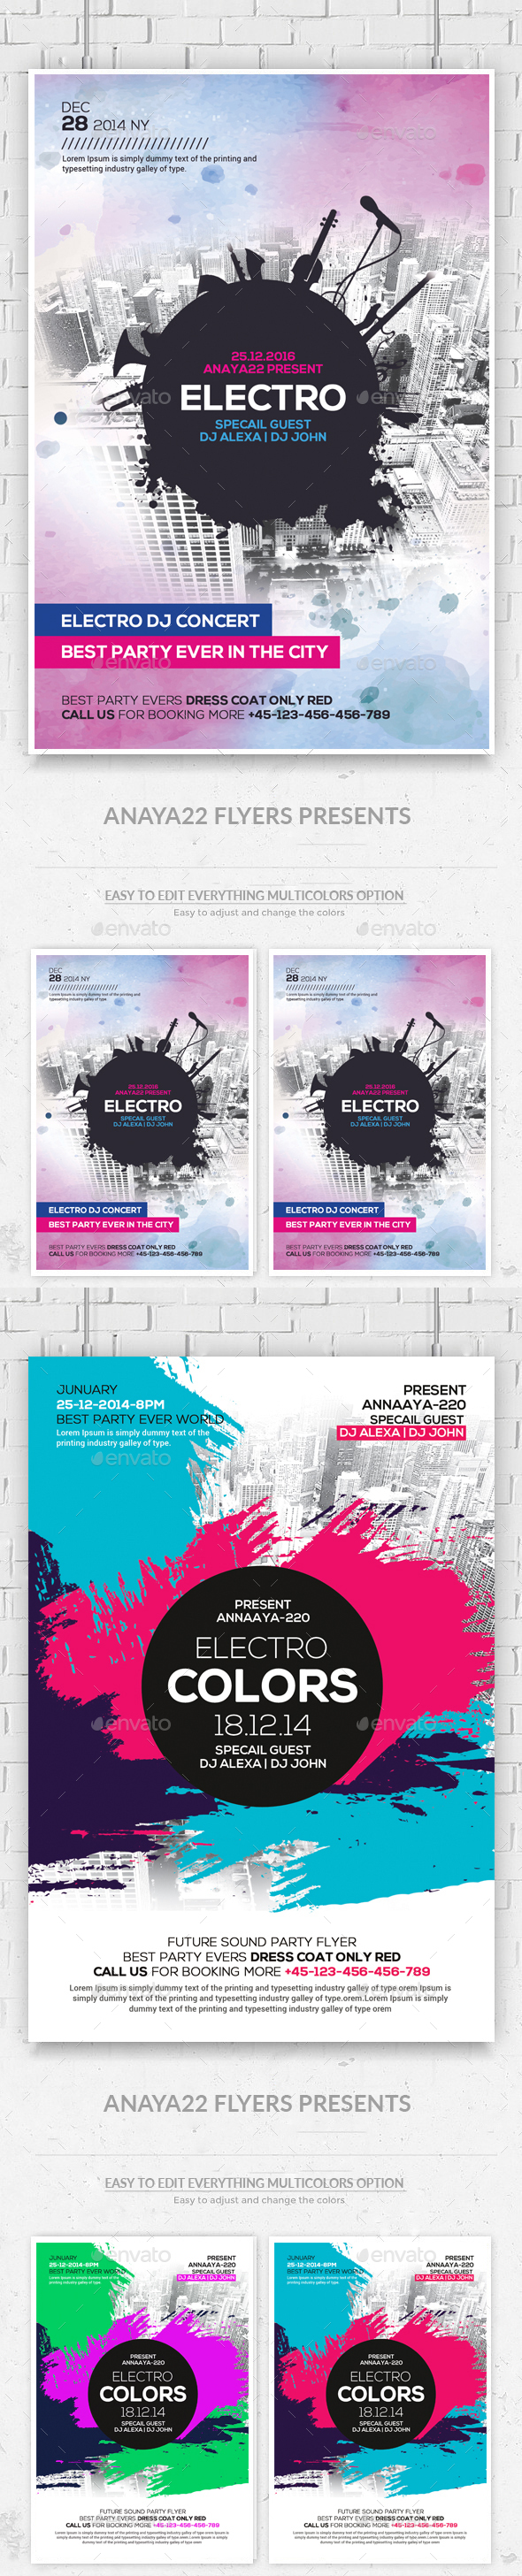 Modern Electro City Flyers Bundle - Clubs & Parties Events